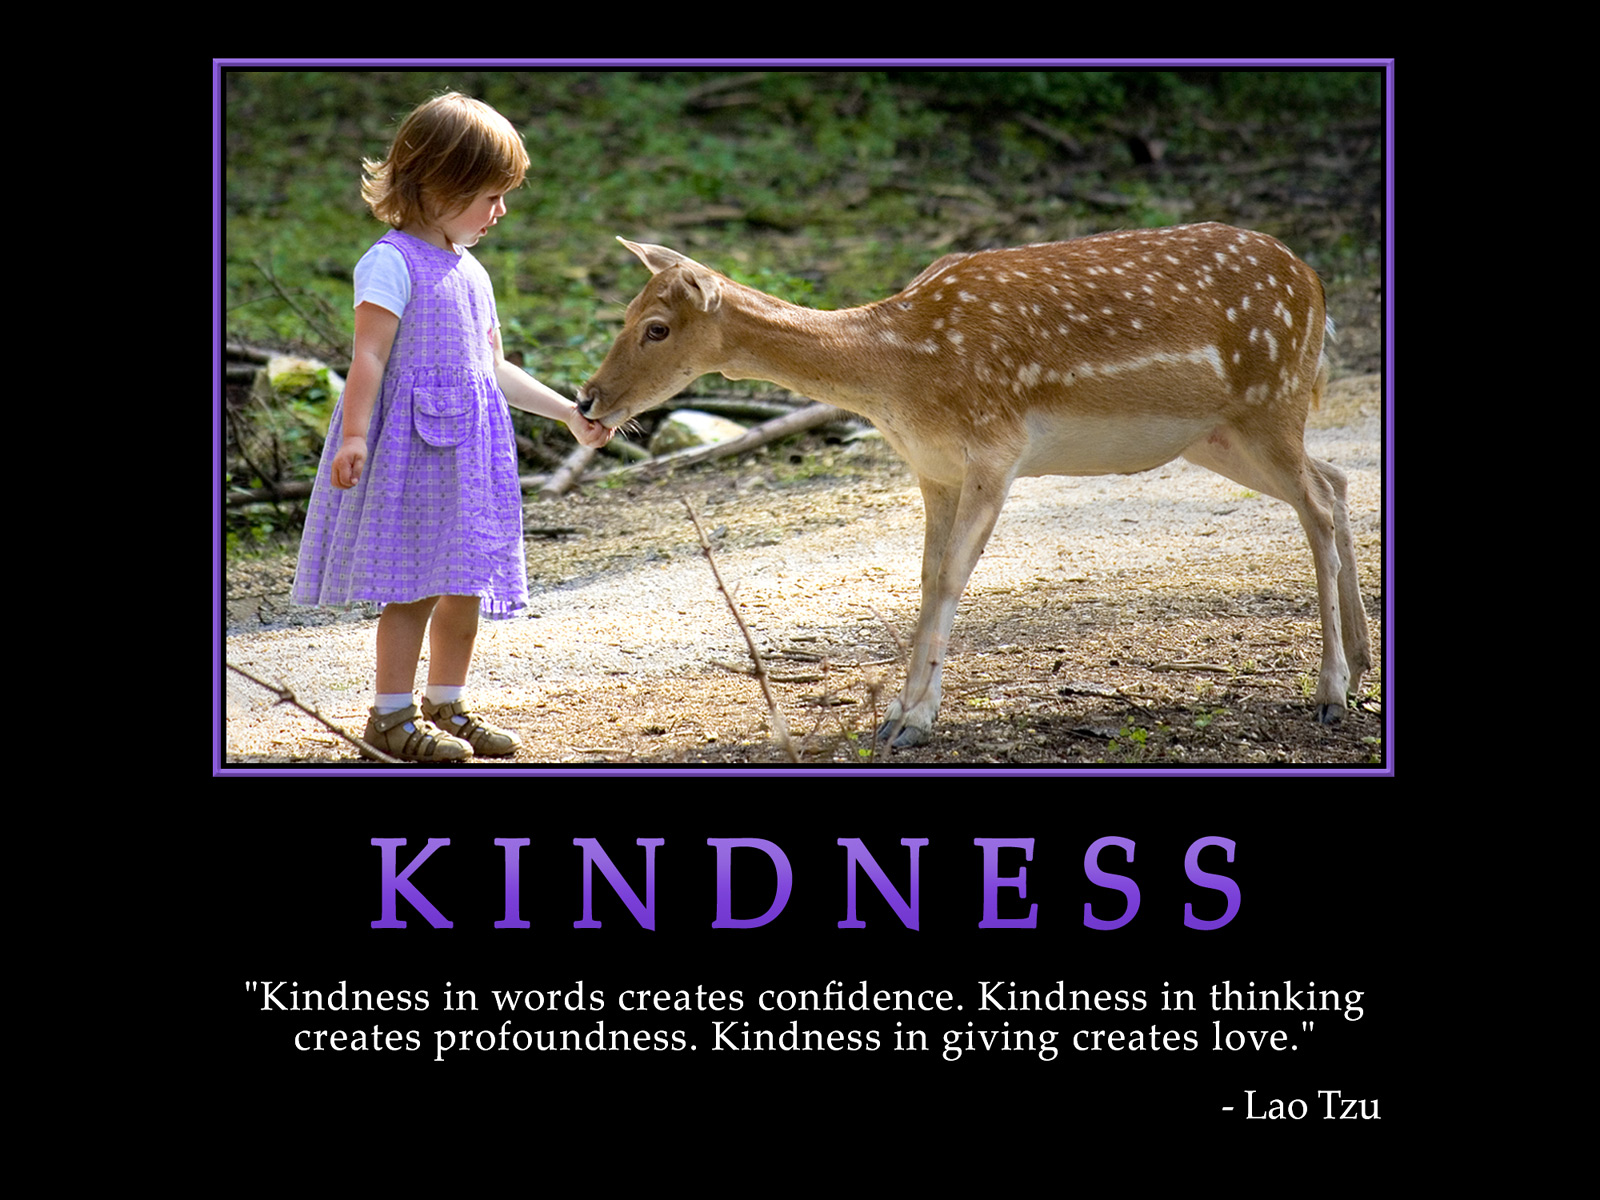 Kindness Quotes: Kindness Quotes For Work. QuotesGram